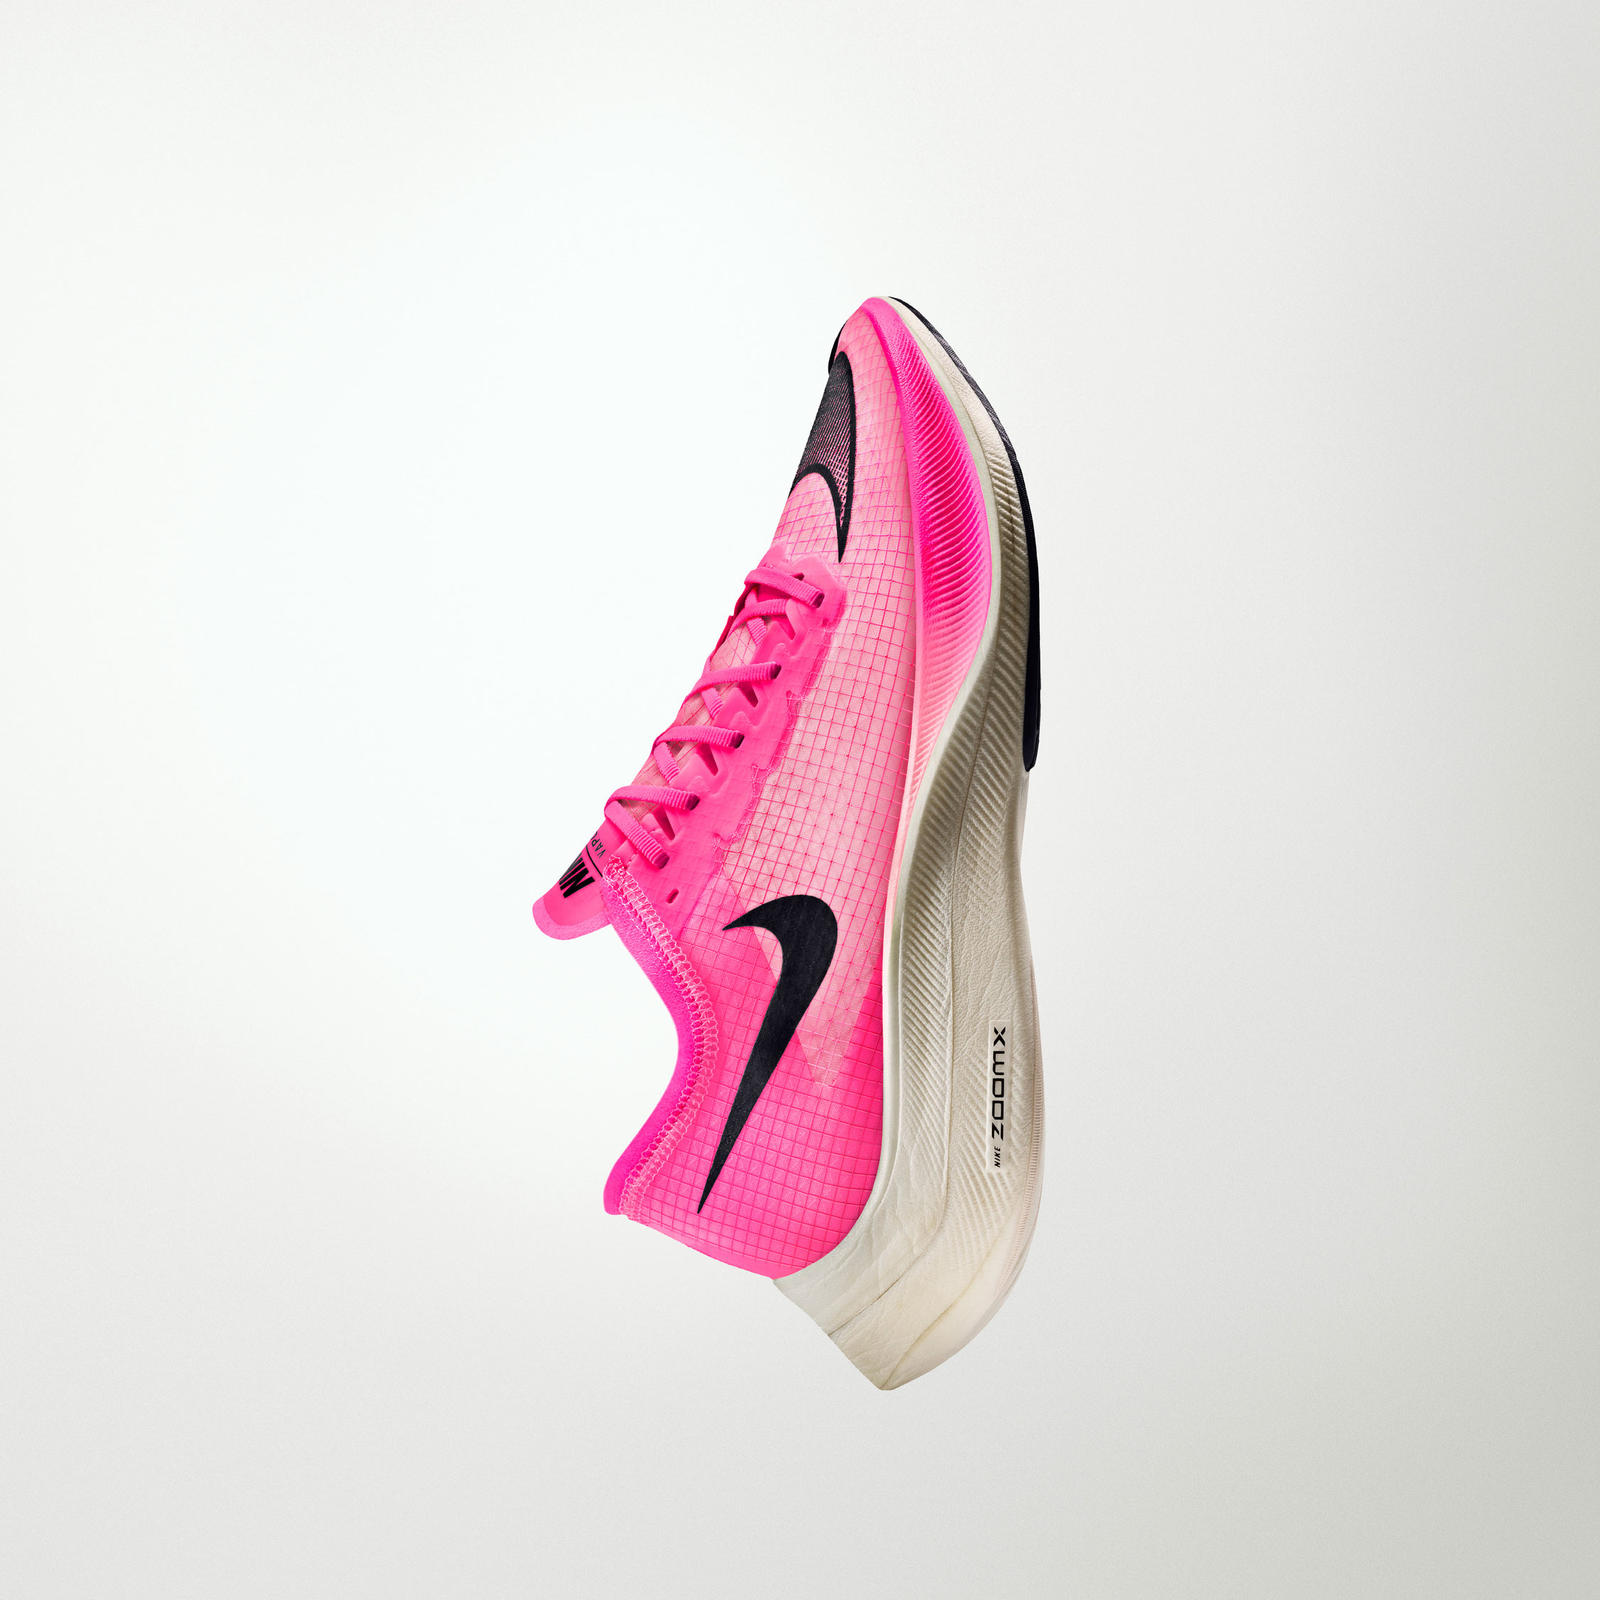 NikeNews_ZoomFamily19_HO19_RN_Zoom_Next_VERTCAL_native_1600